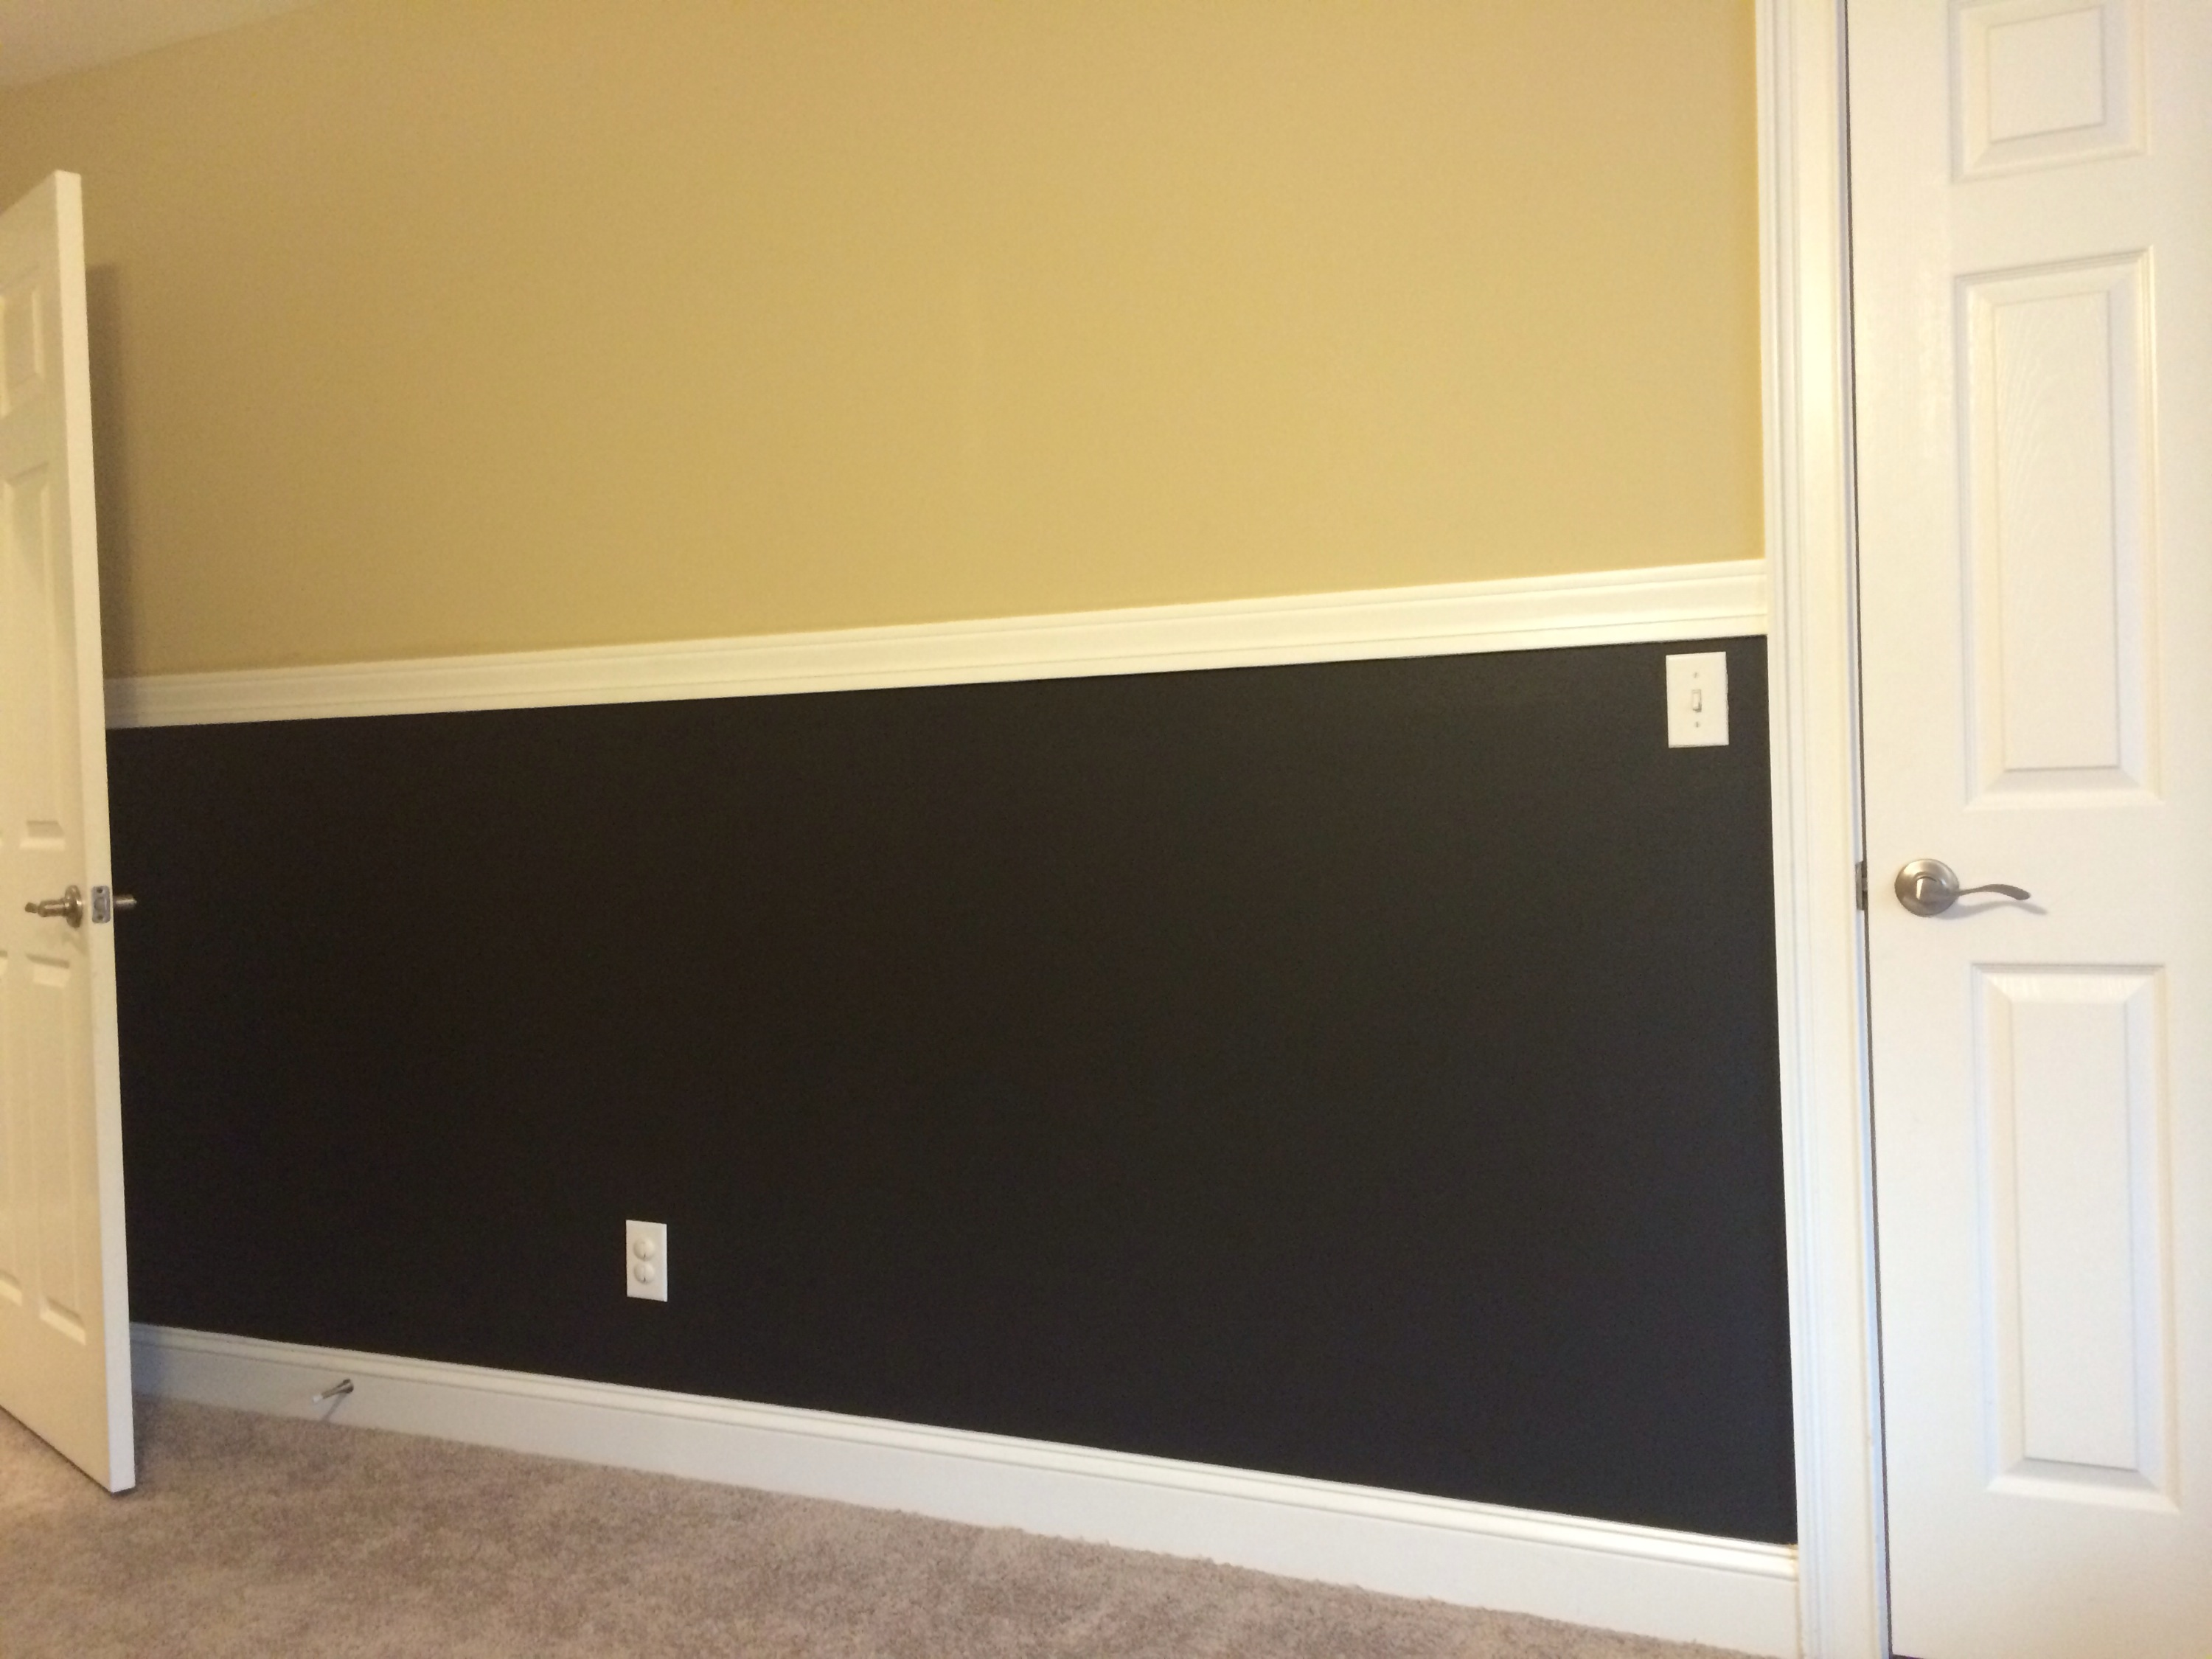 The Evolution Of Our Chalkboard Wall - Unboxed Mom